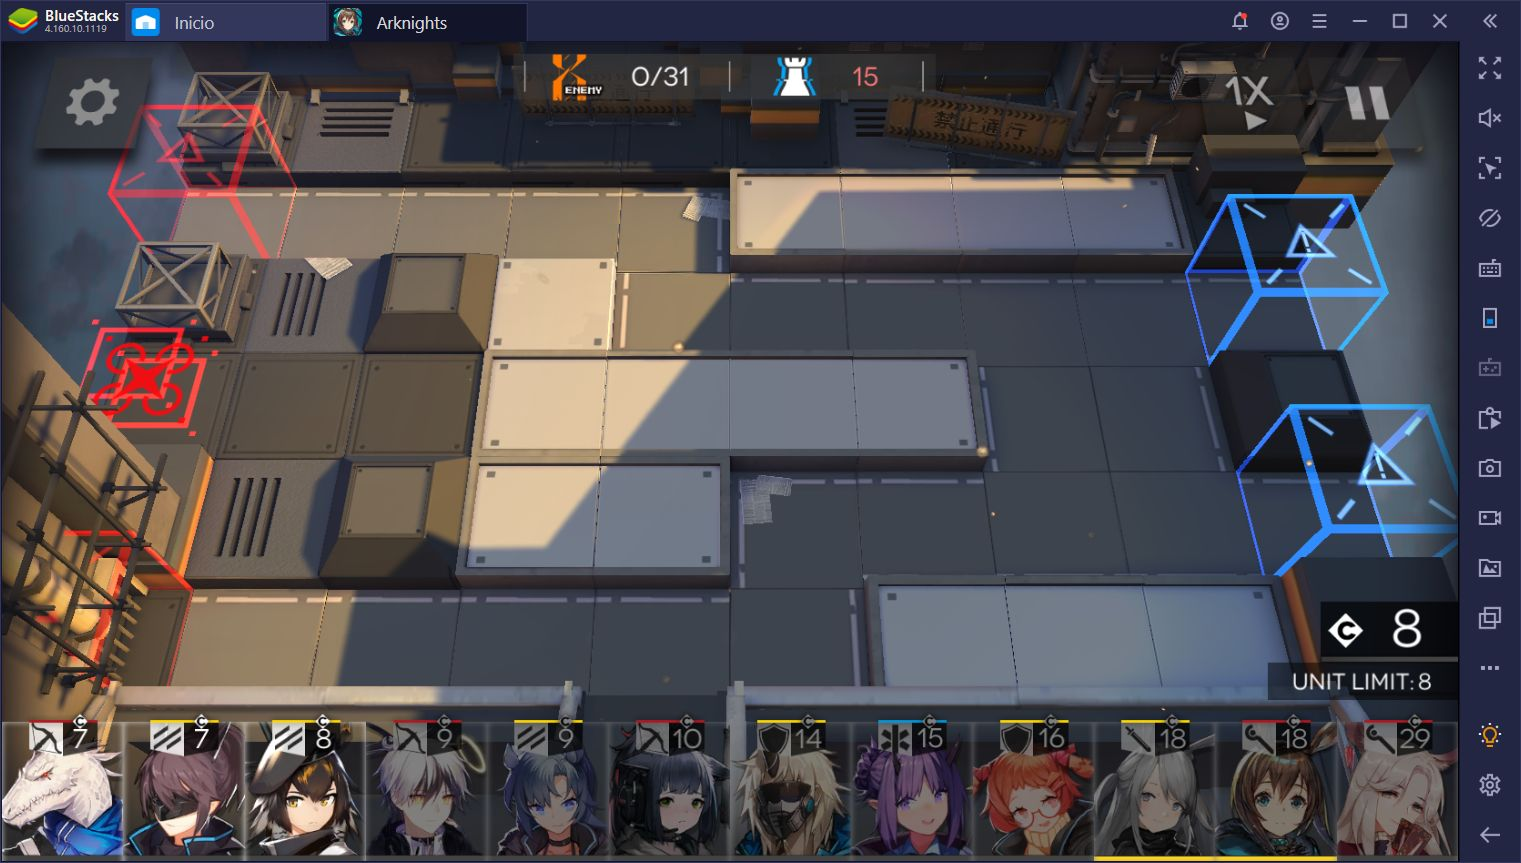 Arknights en PC - Cómo Defender tus Carriles con BlueStacks